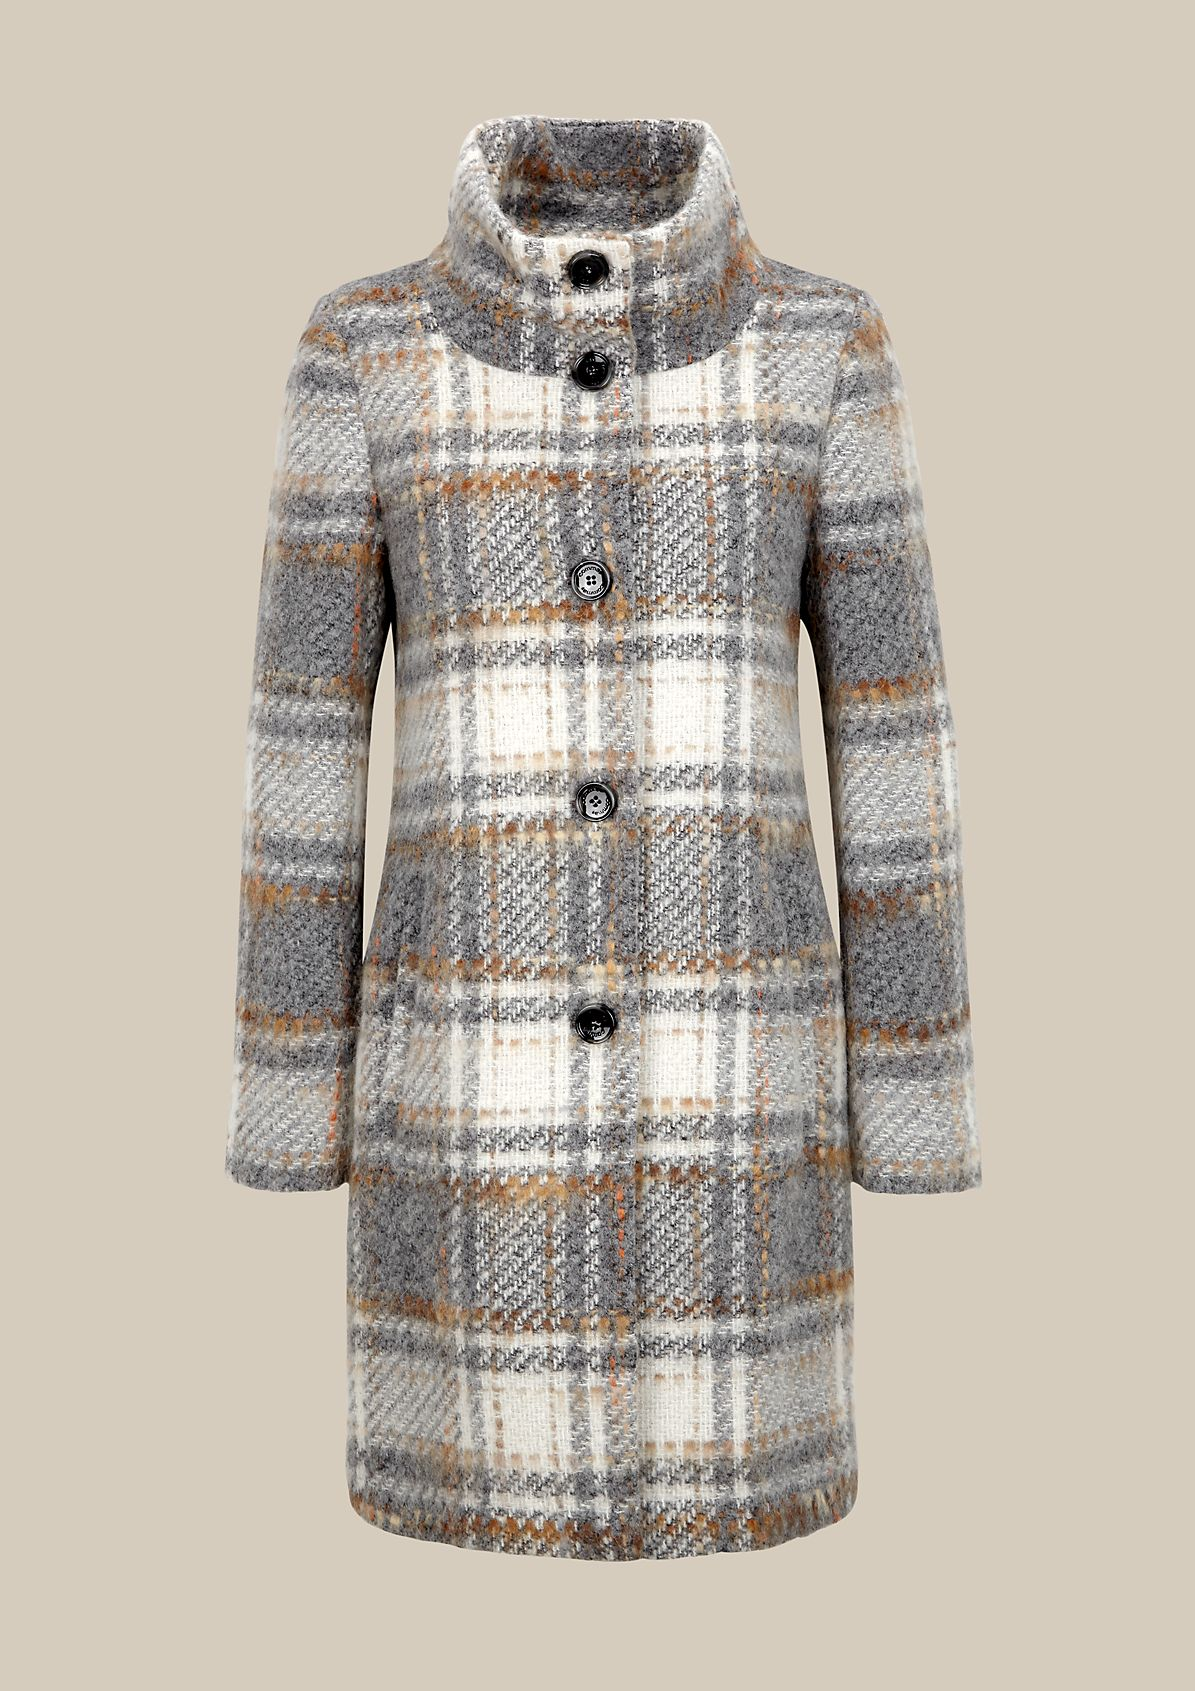 Warm woolly winter coat with a beautiful pattern from comma